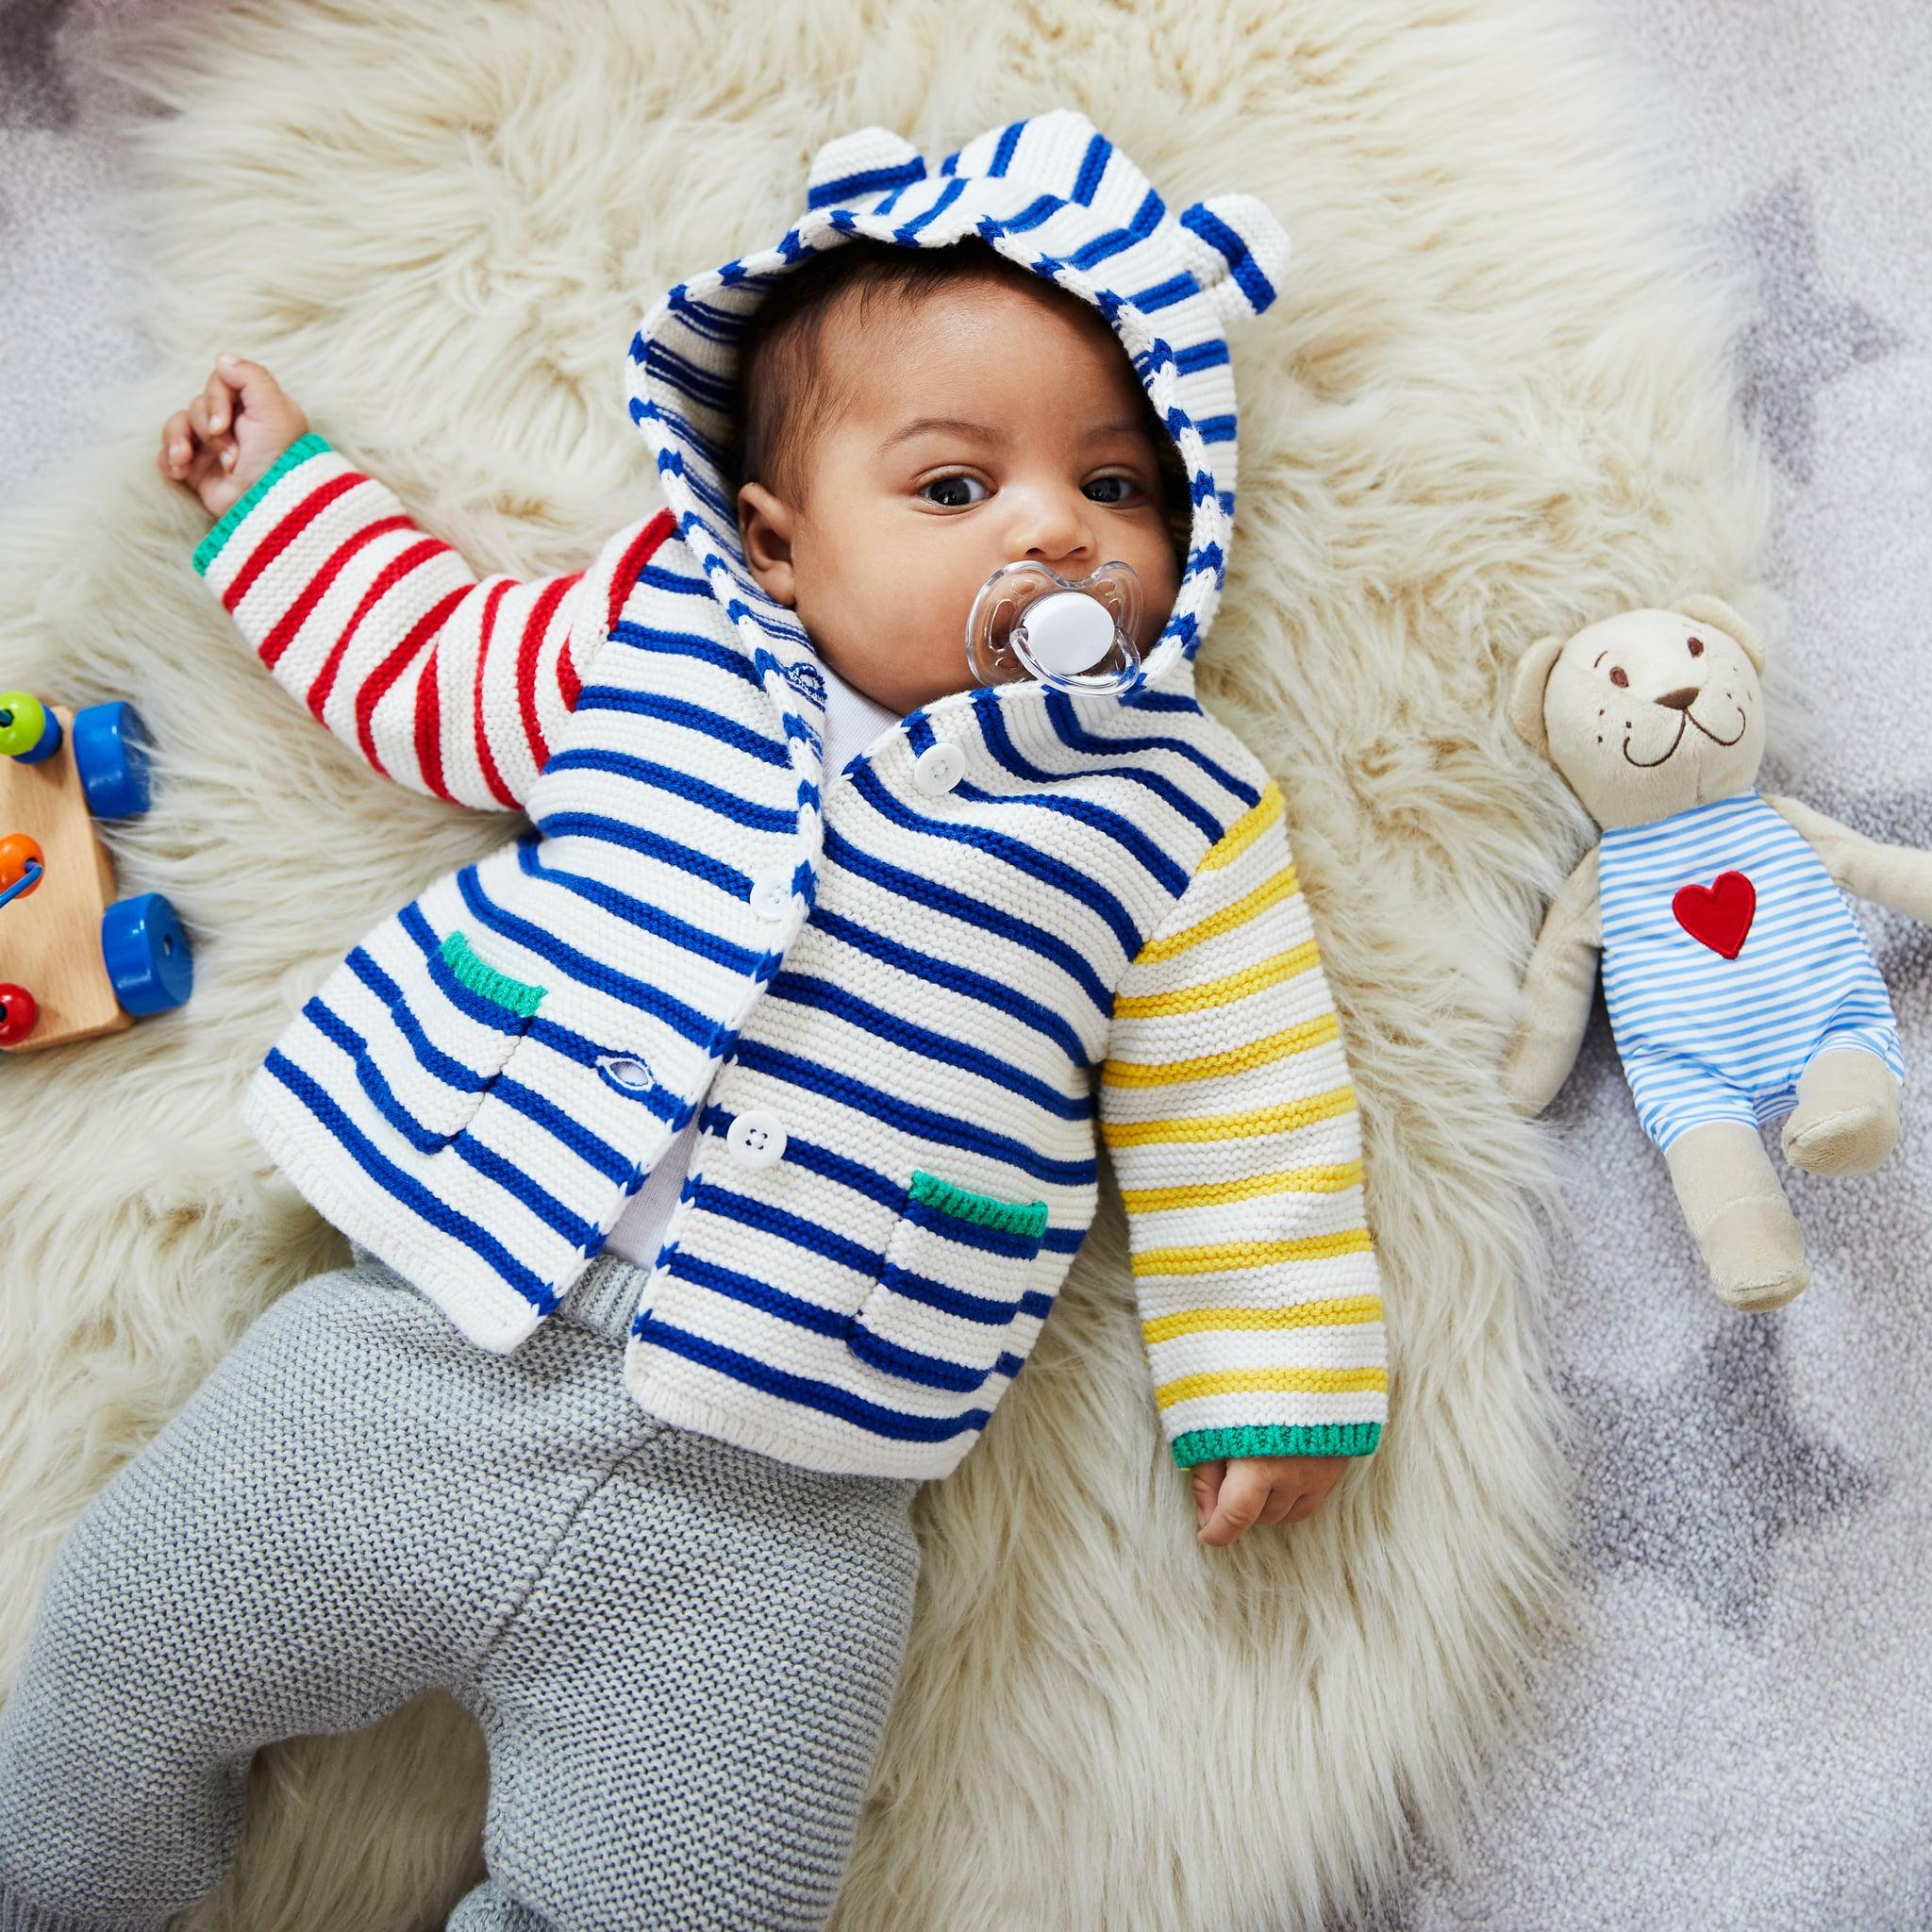 These 10 Baby Names Are the Most Popular of 2019 So Far